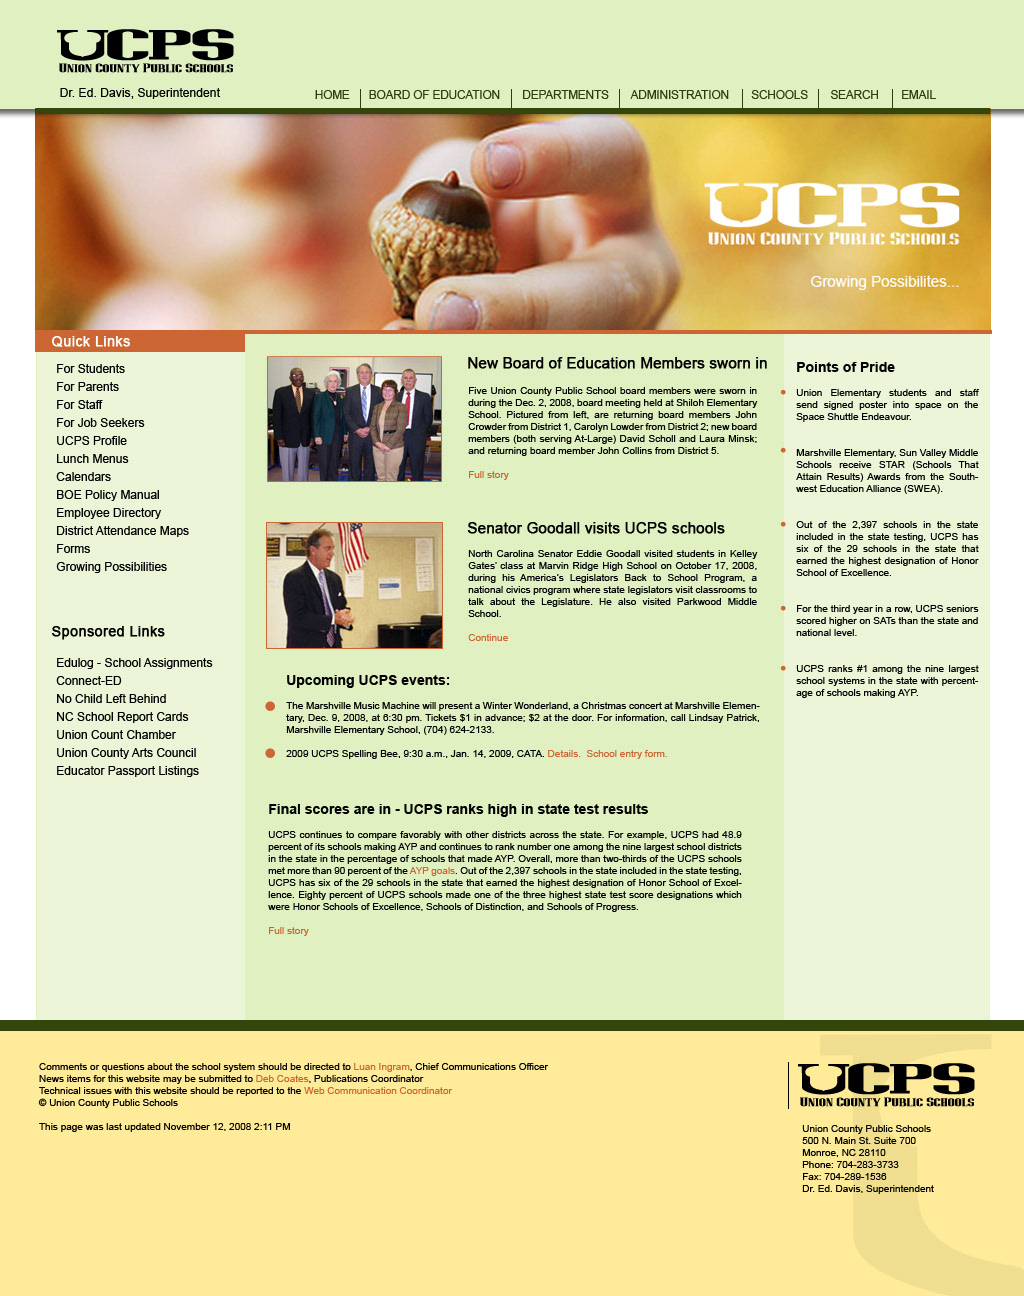 Arthur Rogers - UCPS Website Design